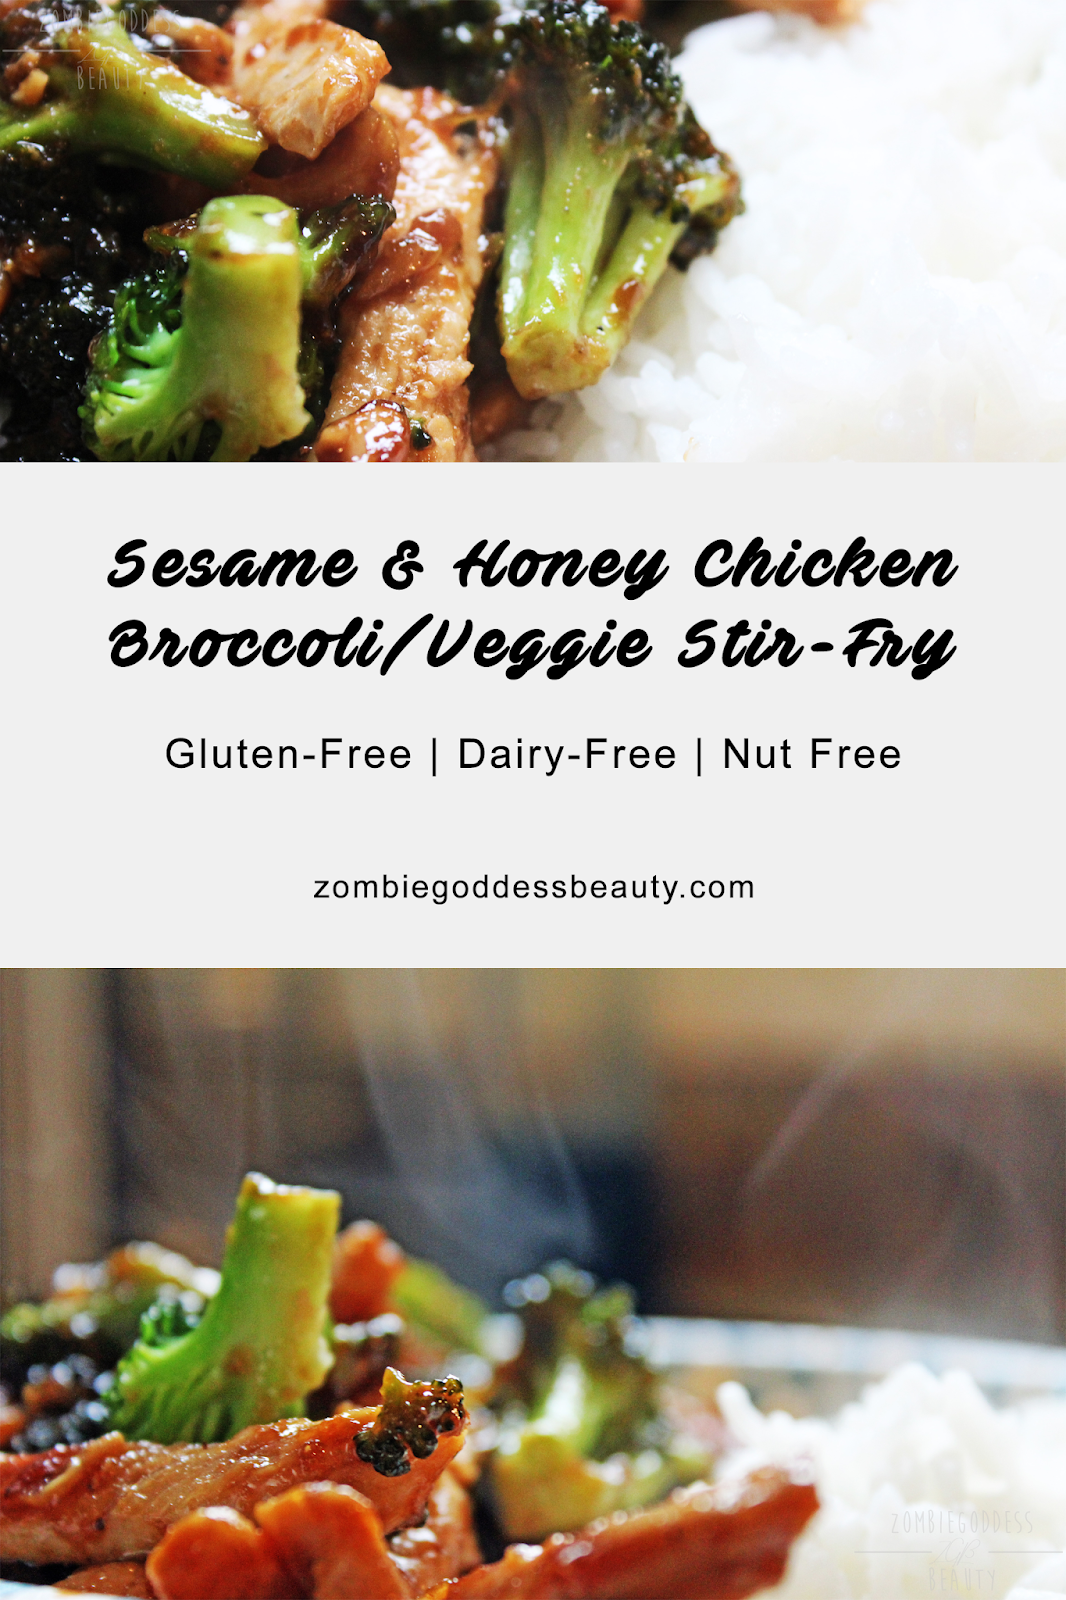 Sesame & Honey Chicken Broccoli/Veggie Stir-fry | Recipe | Gluten & Dairy Free! | By ZombieGoddess Beauty